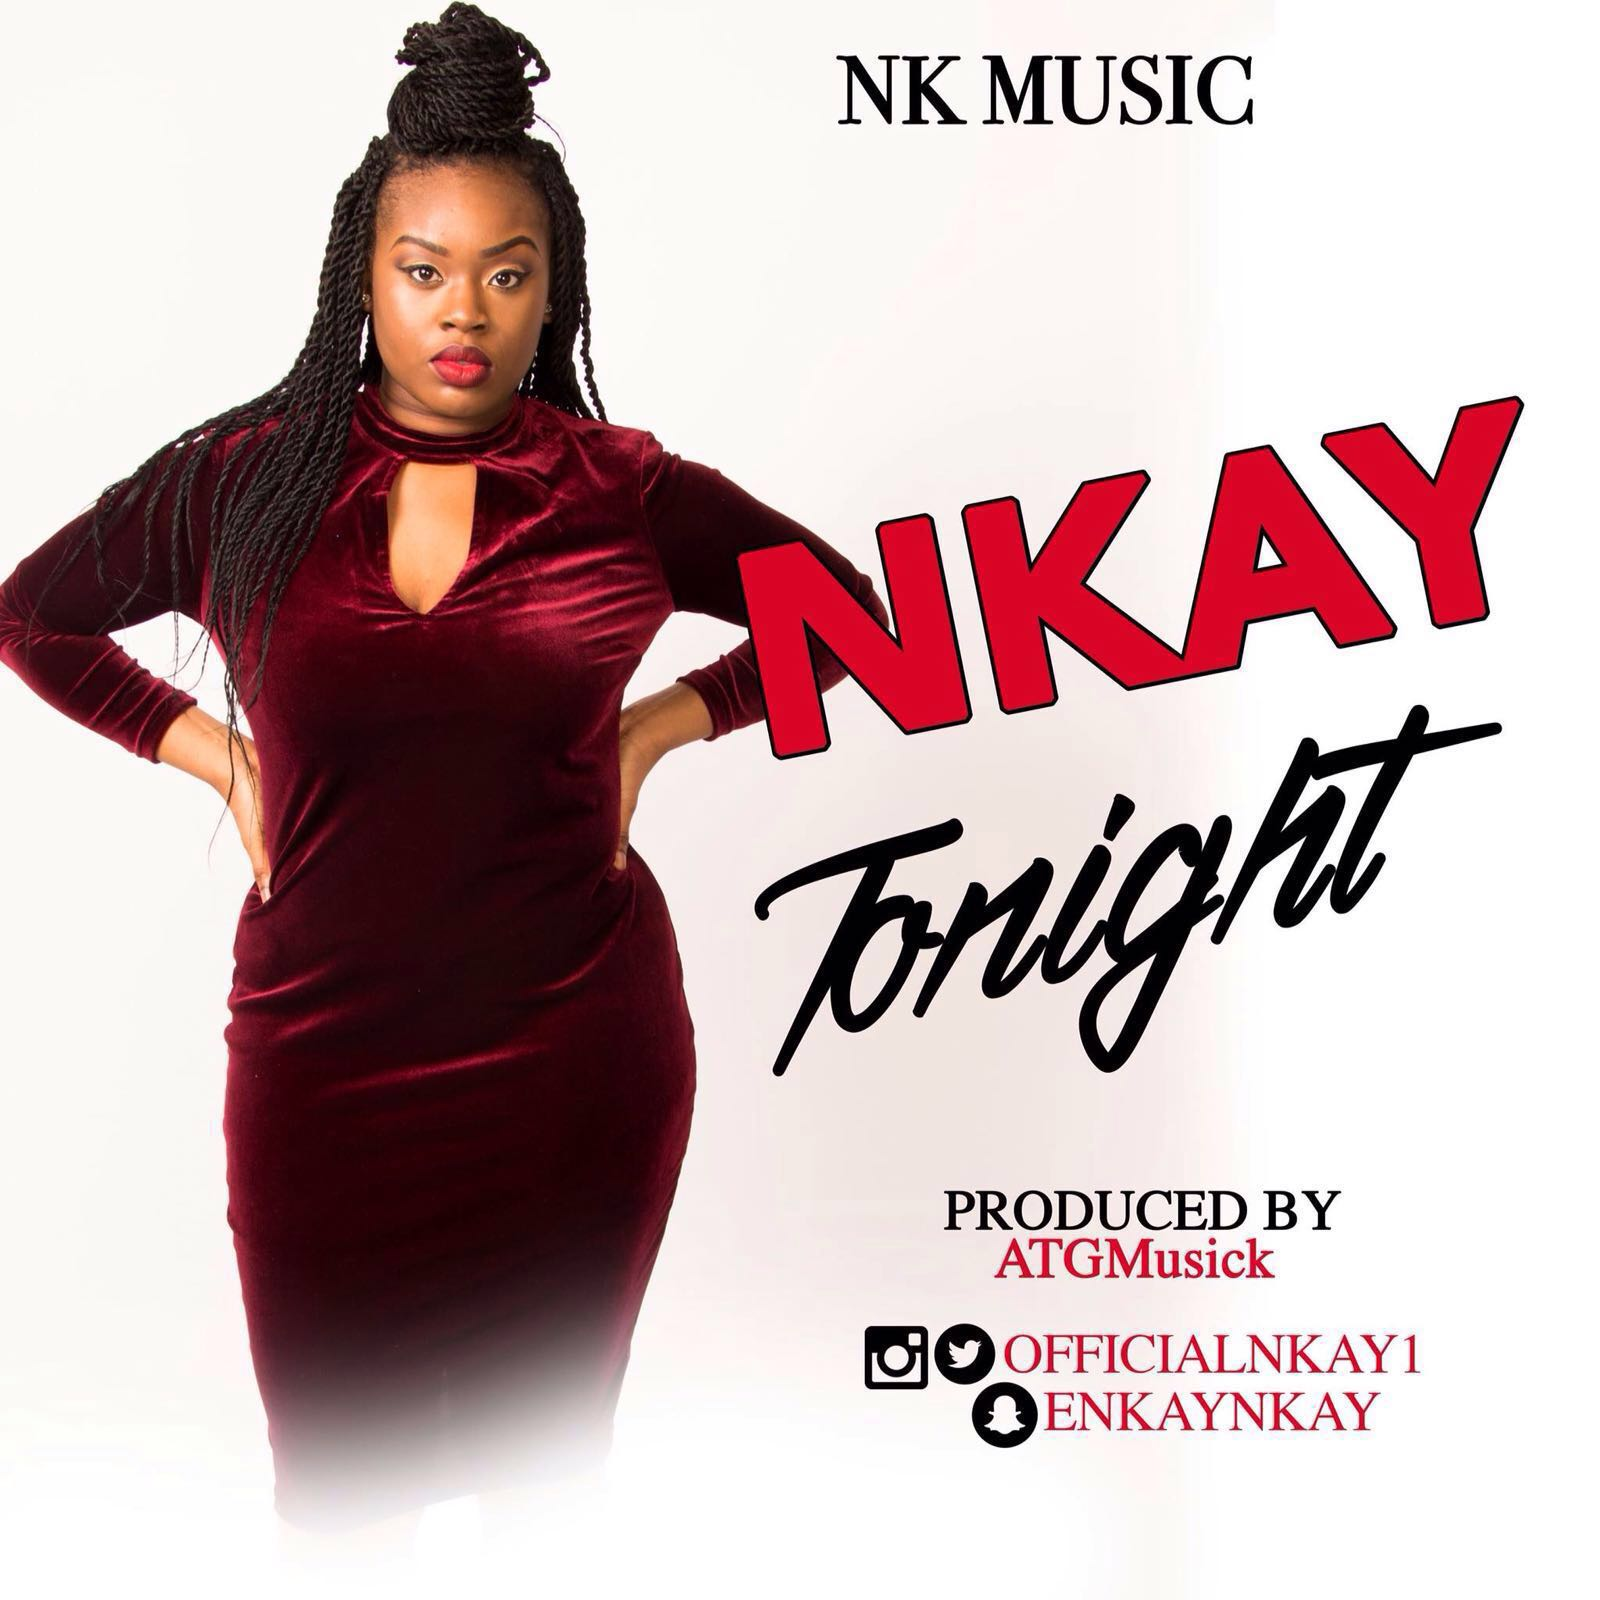 Nkay - Tonight